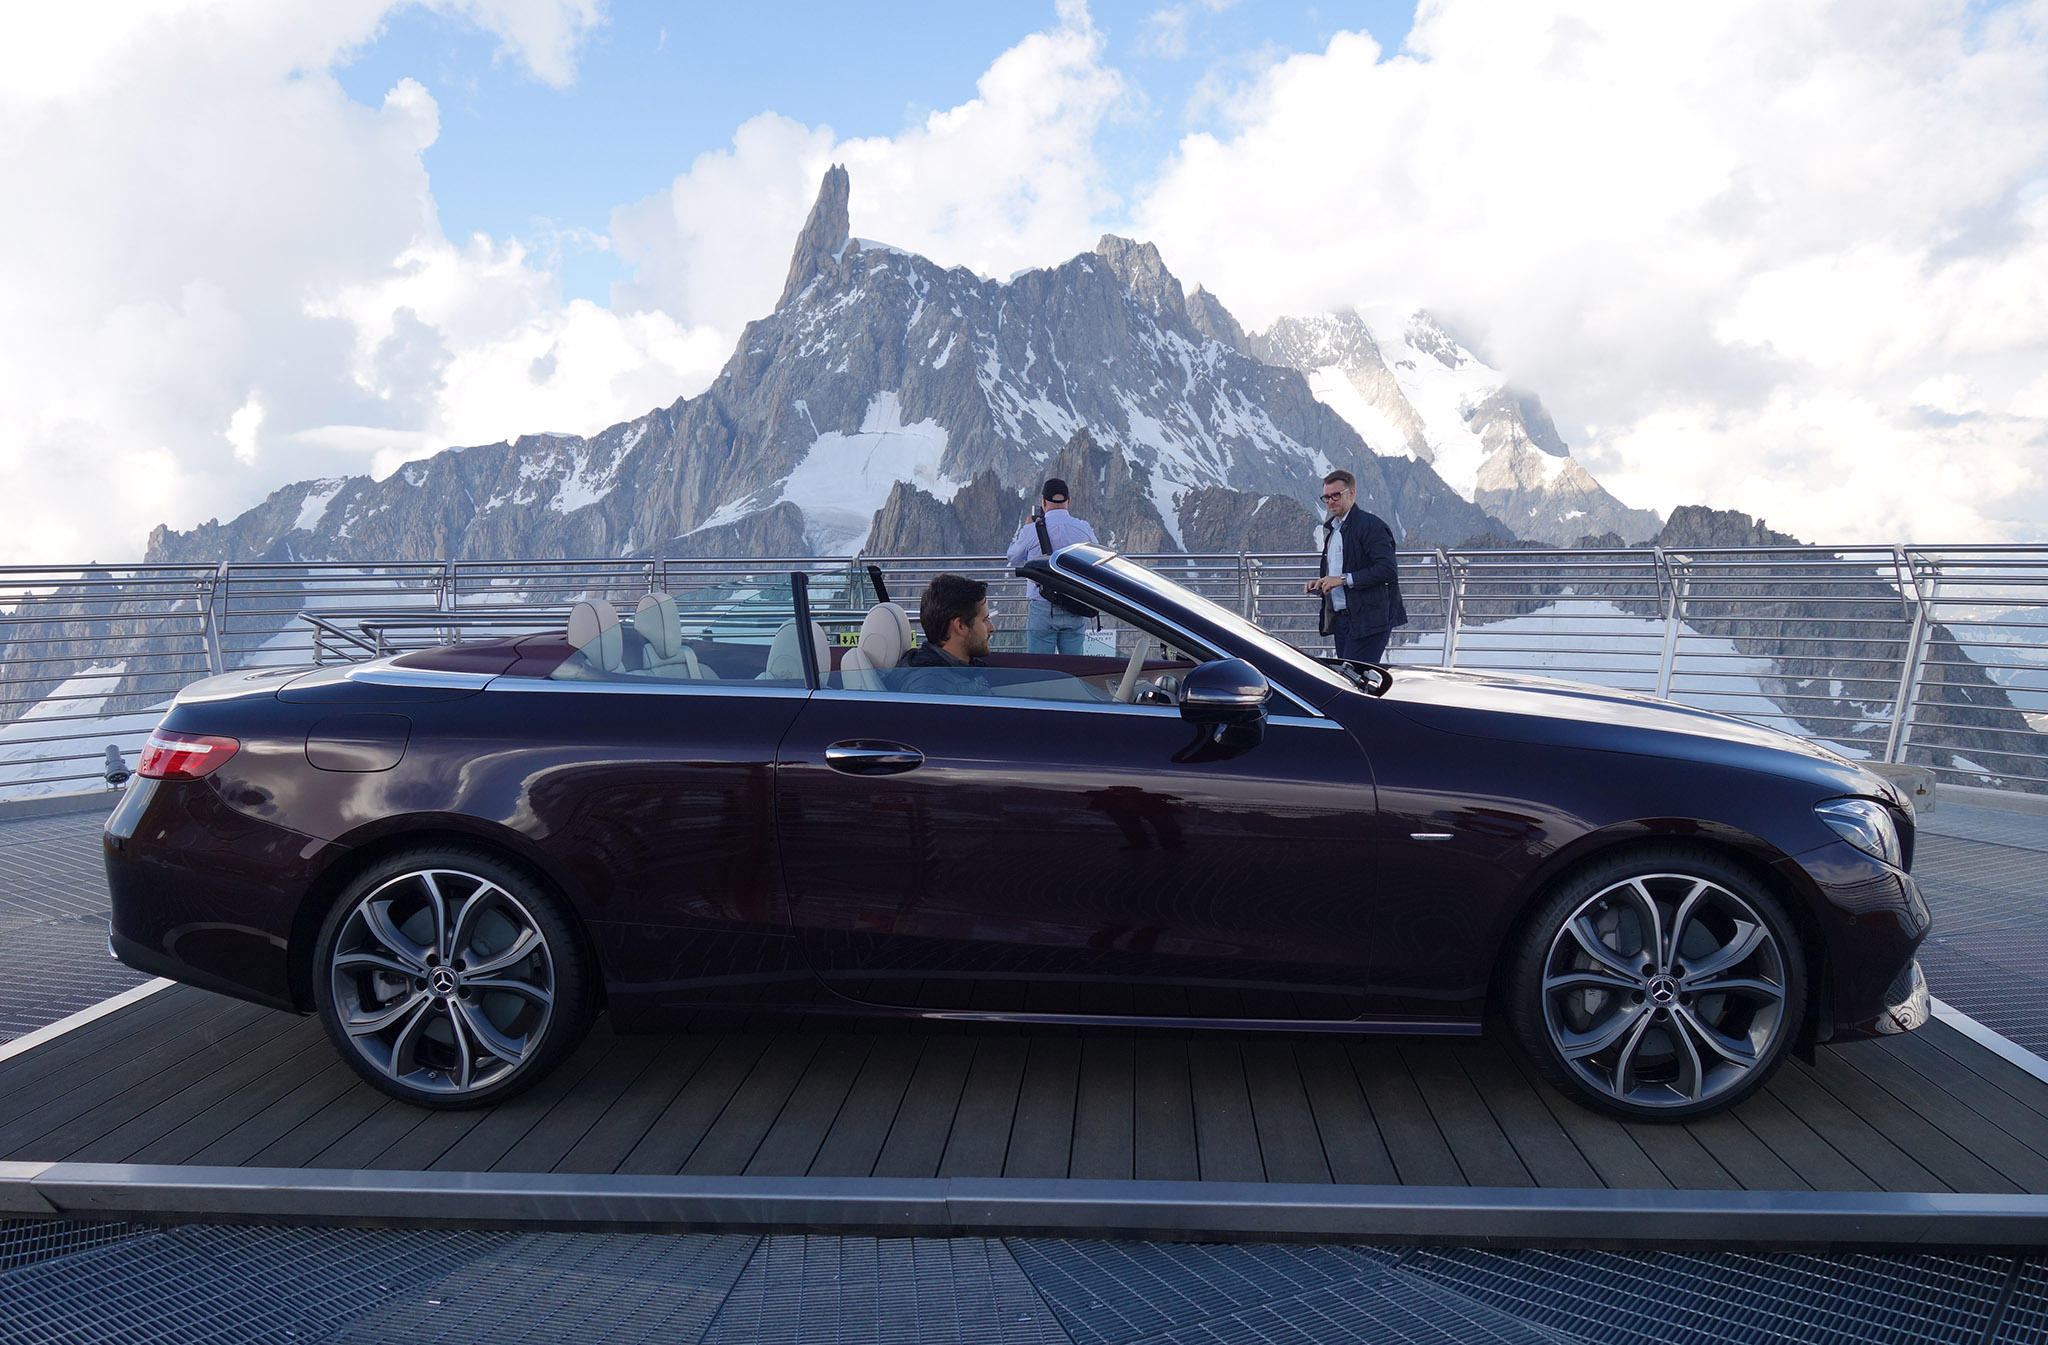 Mercedes Wants You To Know That Its Convertibles Are Designed For All Year Driving Under The Most Extreme Conditions But More On Later